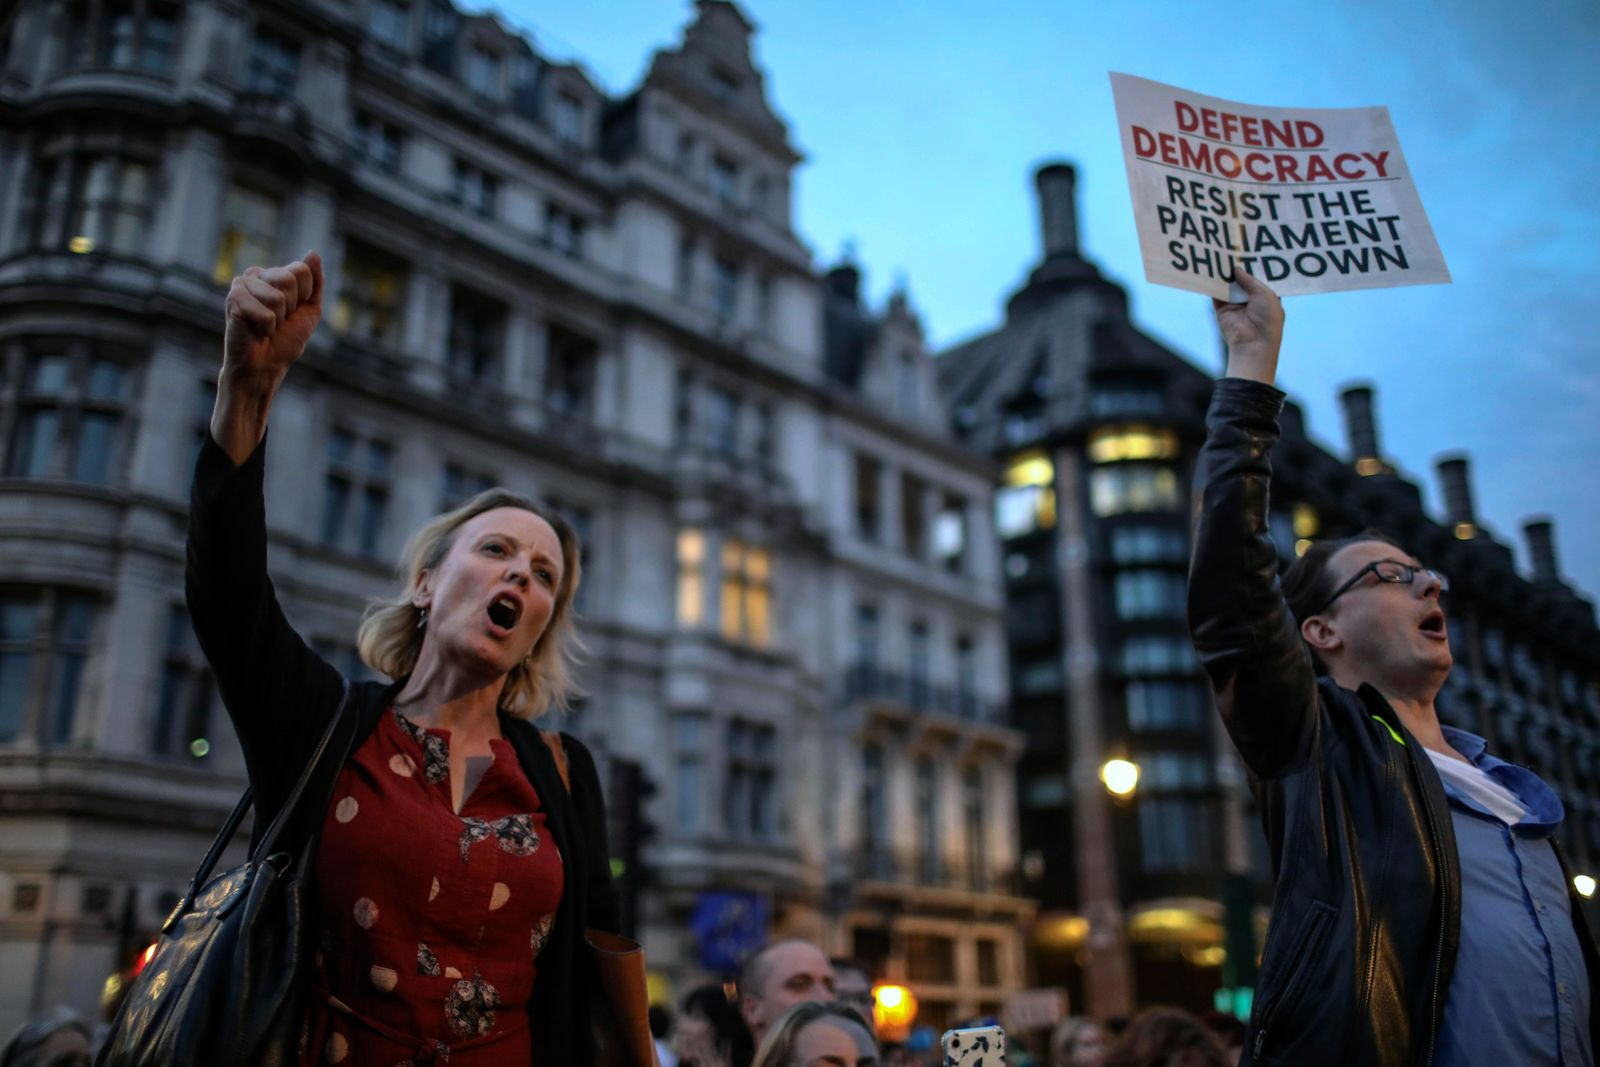 Anti-Brexit supporters take part in a protest in front of the Houses of Parliament in central London, Wednesday, Aug. 28, 2019. . (AP Photo/Vudi Xhymshiti)